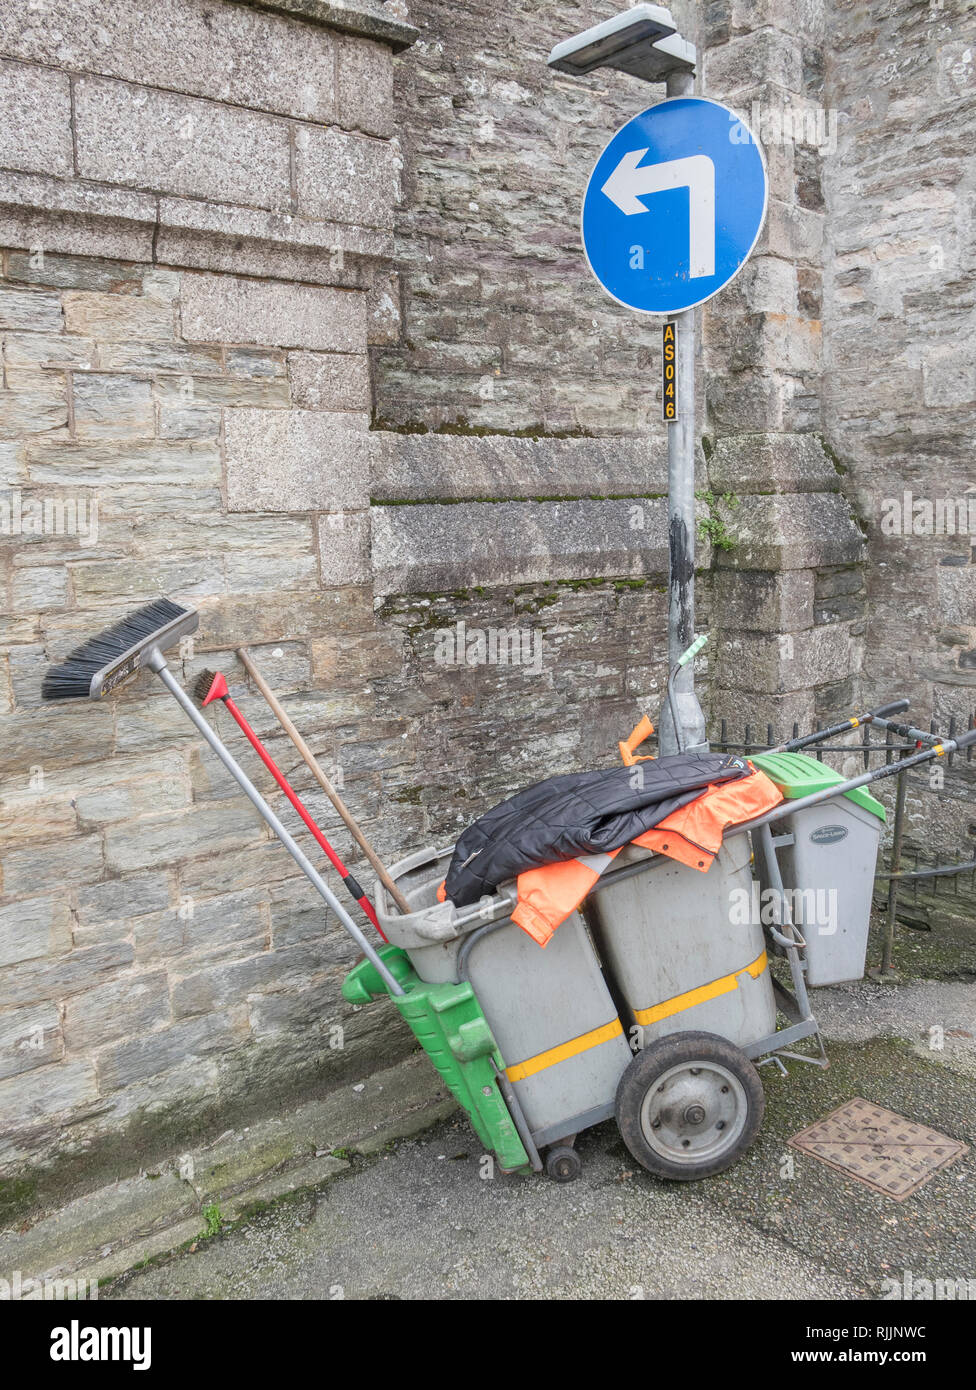 Street cleaner's trolley cart pulled up beside Turn Left road sign. Stock Photo